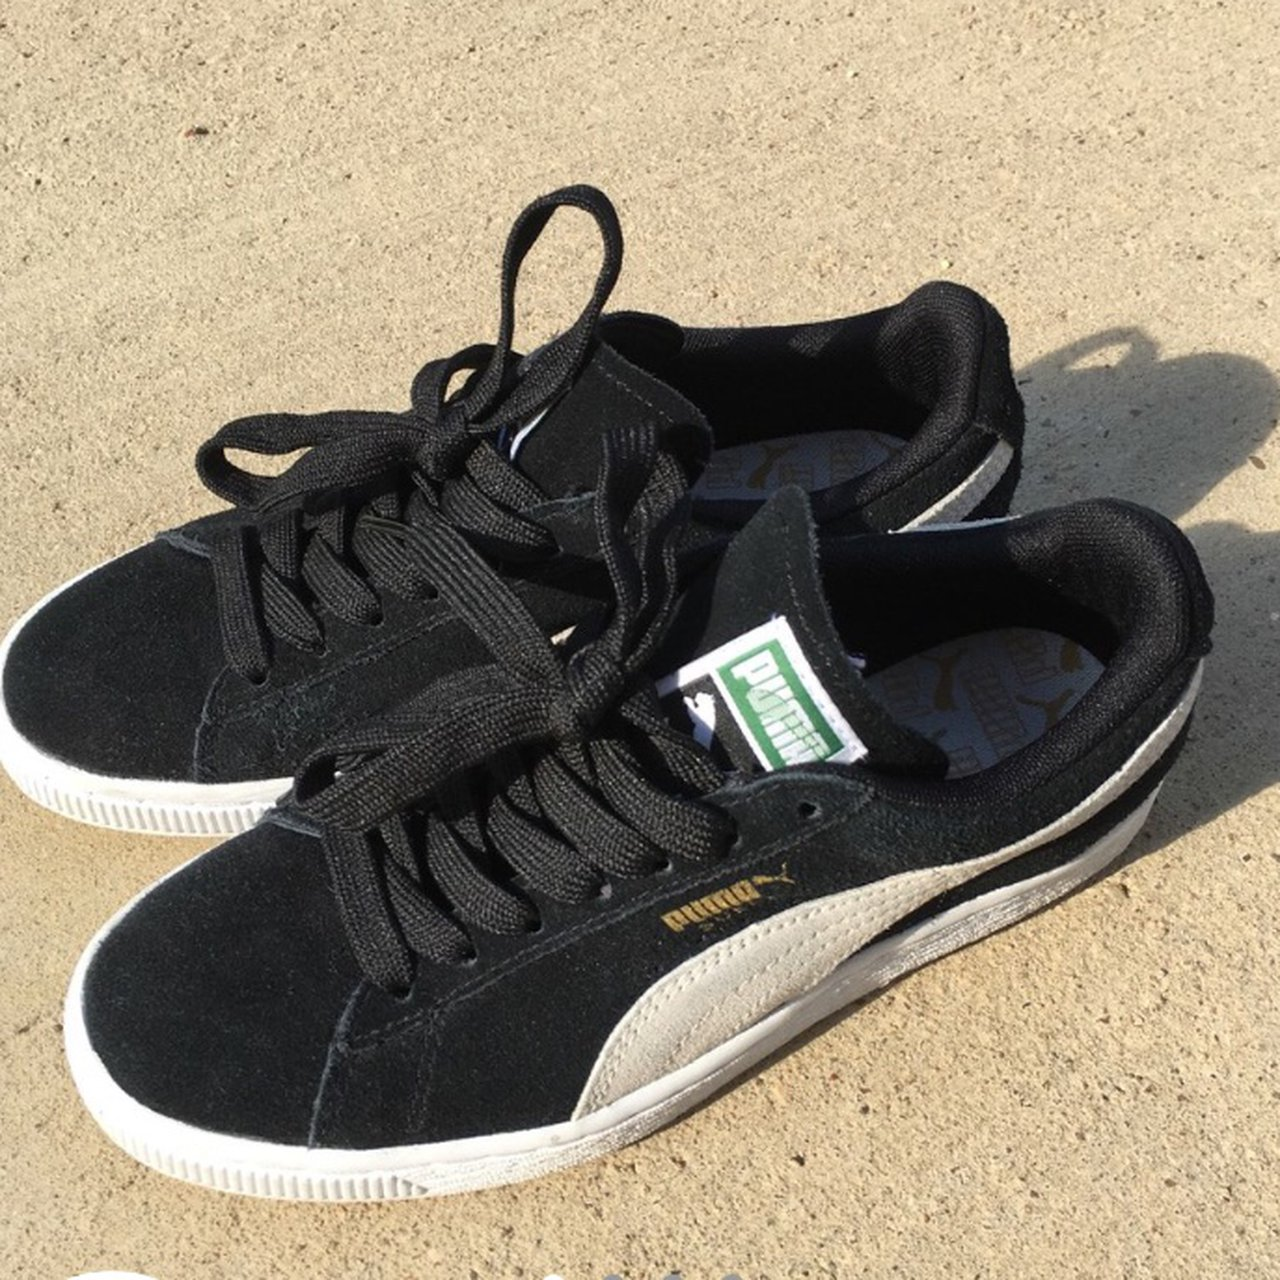 7a9b6ee4739566 Pumas suede in black and white. size 6 women s. only worn in - Depop